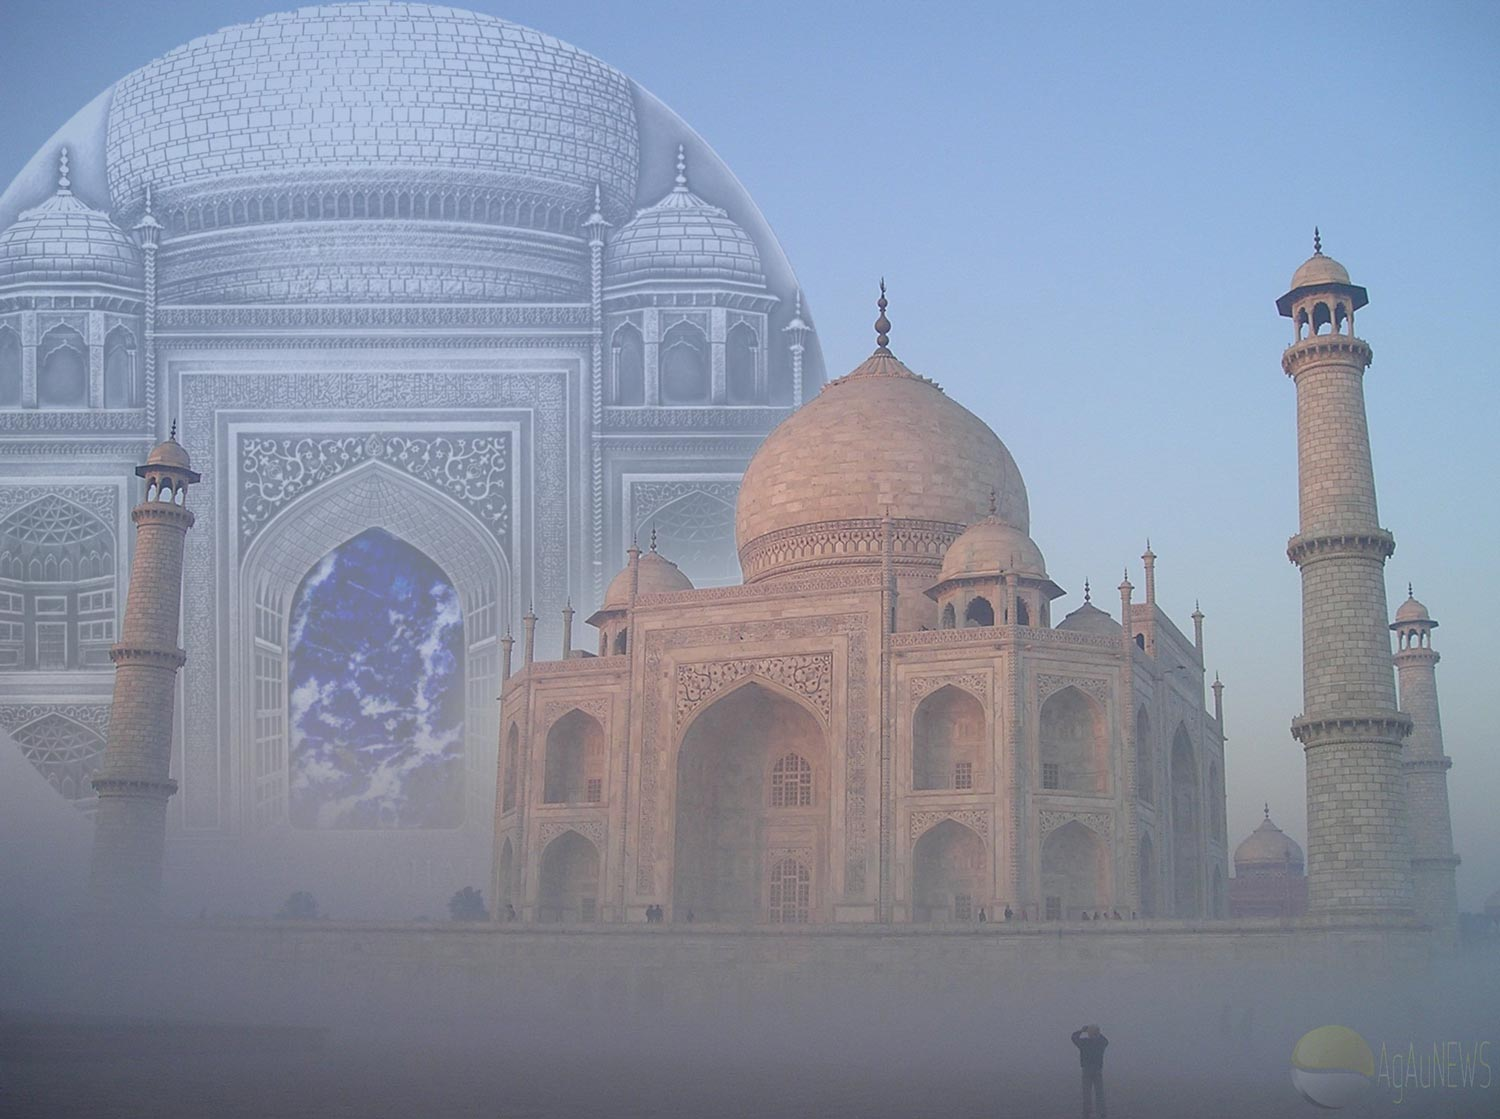 TIFFANY ART COMPETITION INTENSIFIES WITH A STUNNING SILVER KILO TAJ MAHAL COIN